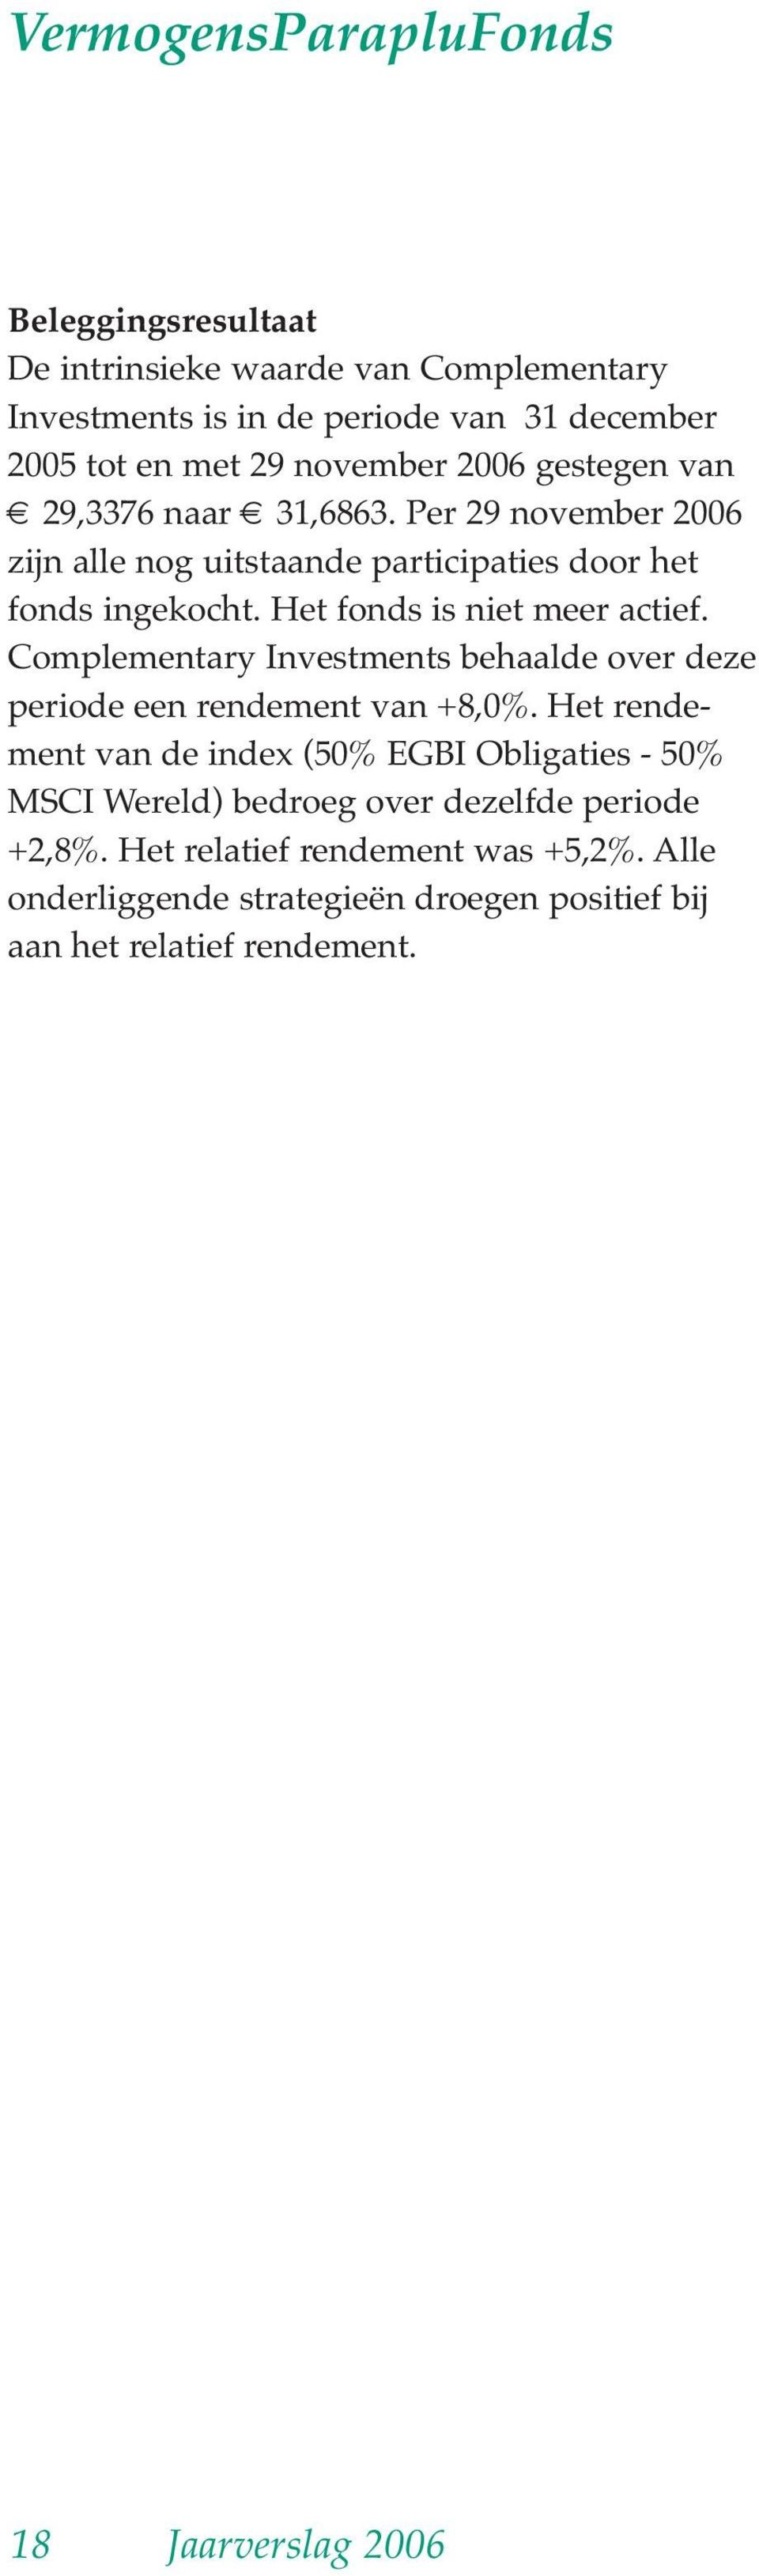 Complementary Investments behaalde over deze periode een rendement van +8,0%.